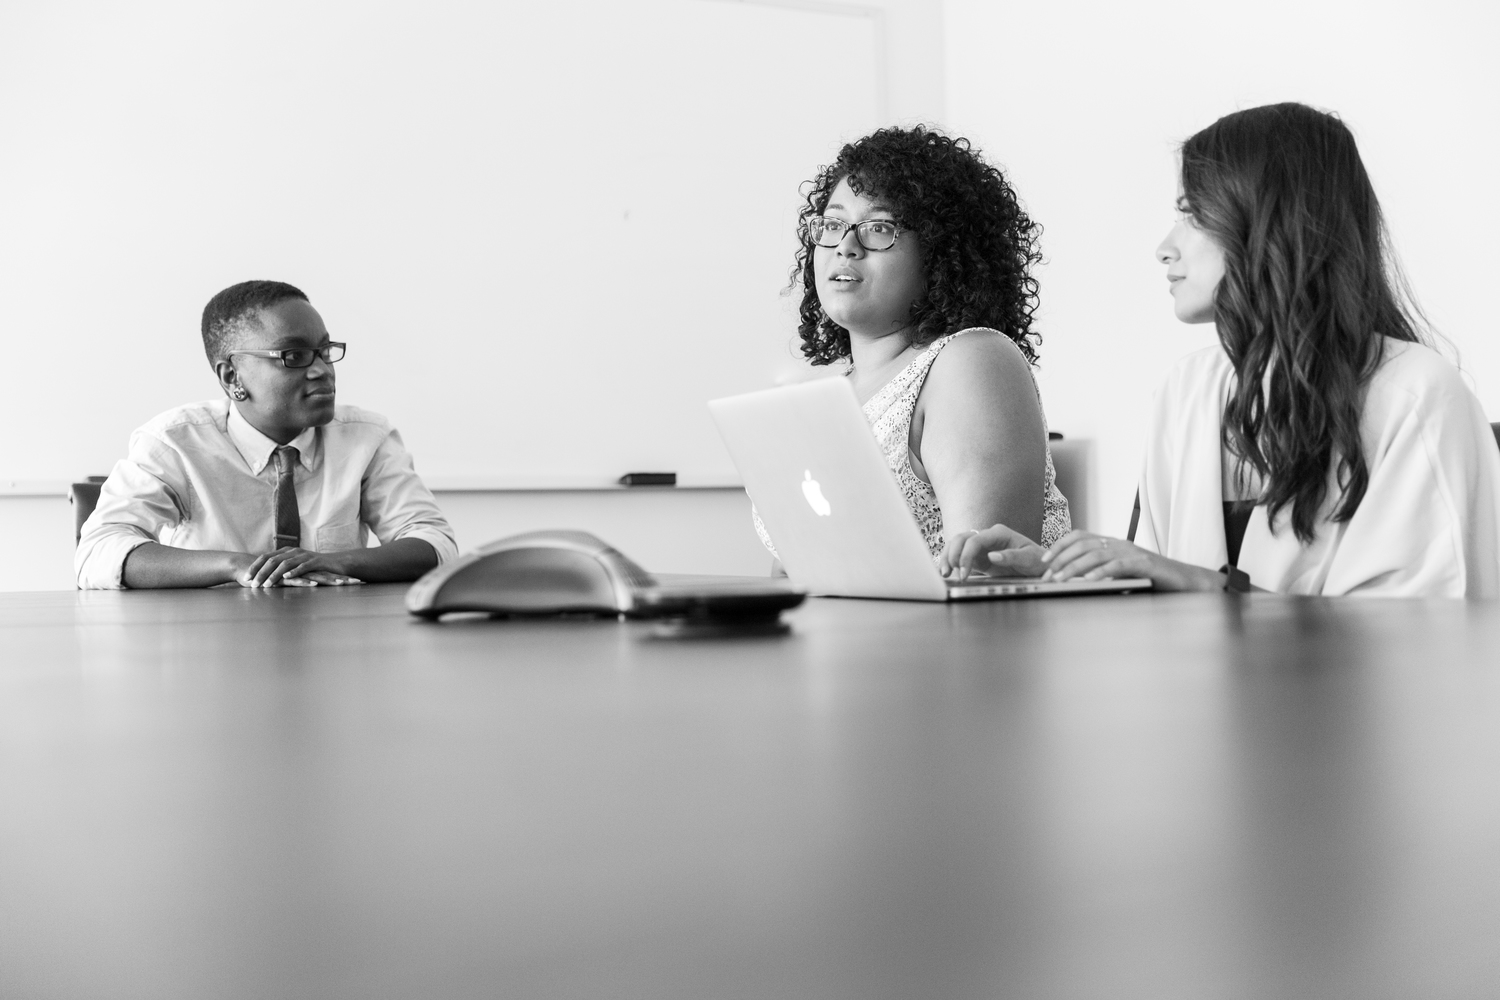 Stock Photos Of Women Of Color In Tech Now Free To Use